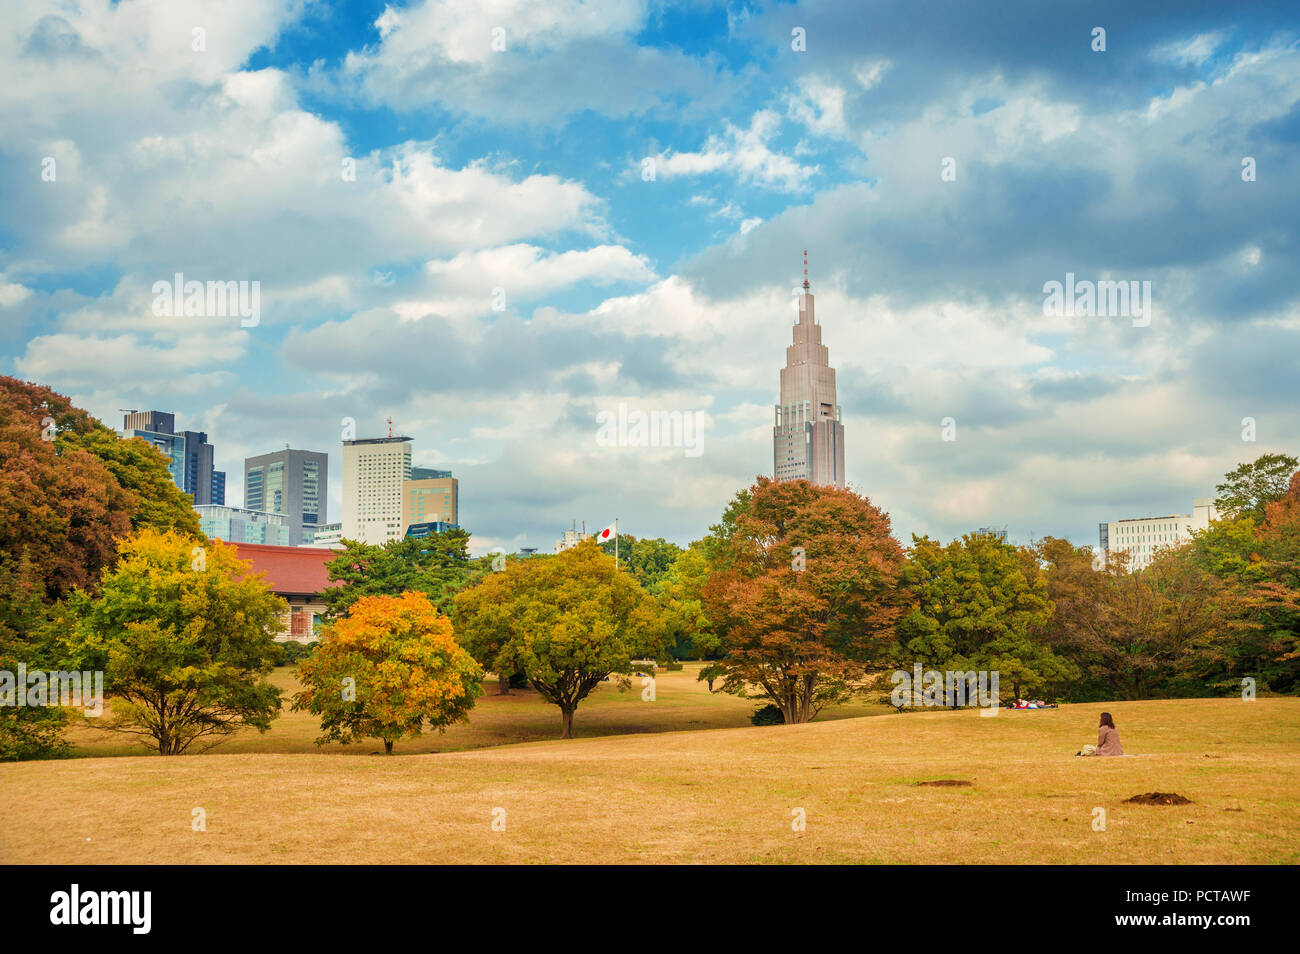 Nature and urban, environment in Tokyo. Shinjuku district skyscrapers seen from Meiji Jingu public park in autumn Stock Photo